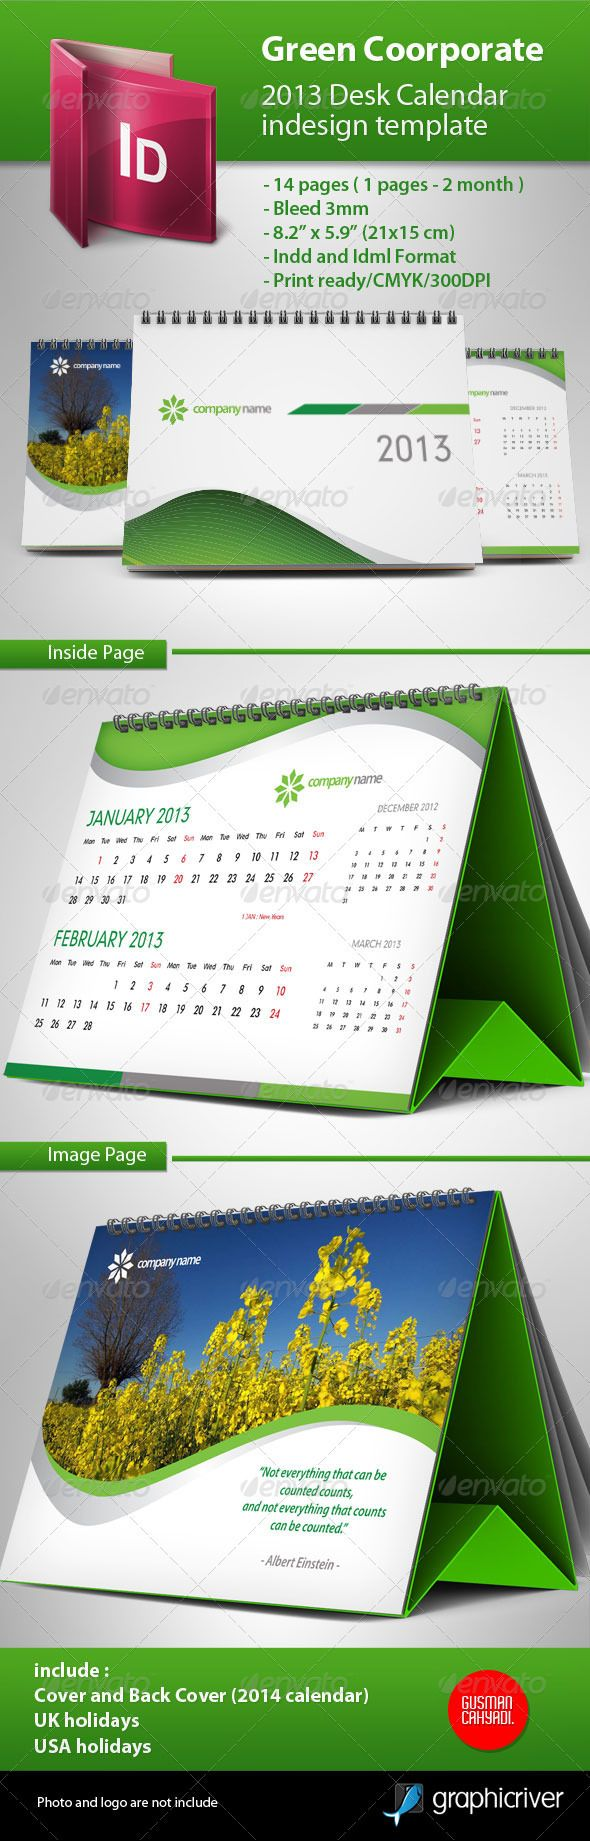 Calendar 2013 Green Template  #GraphicRiver         simple, clean and professional corporate calendar, easy to use, just put your logo and image and it's ready